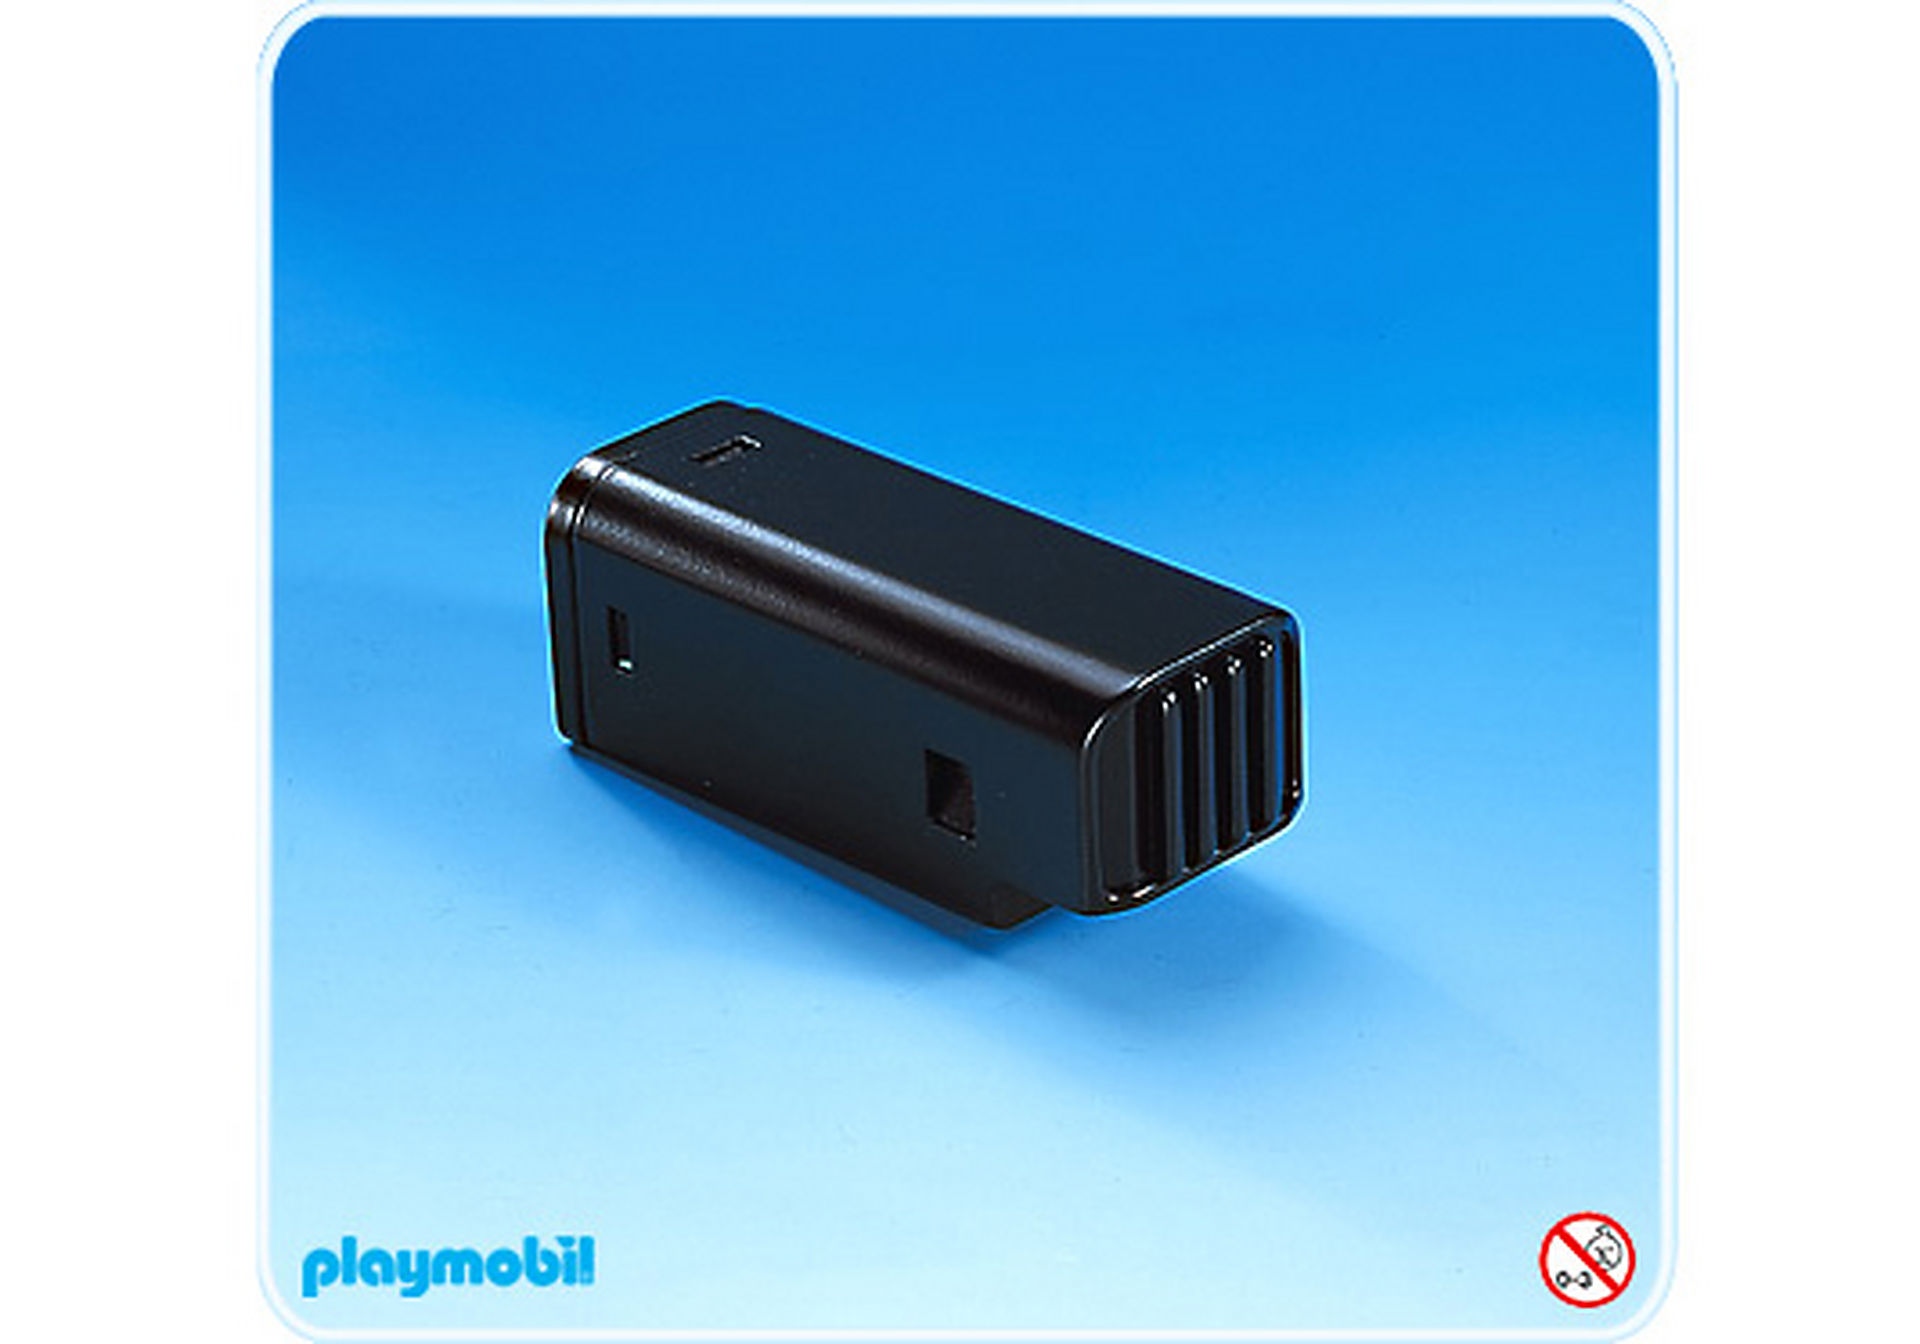 http://media.playmobil.com/i/playmobil/4392-A_product_detail/Accumulateur rechargeable